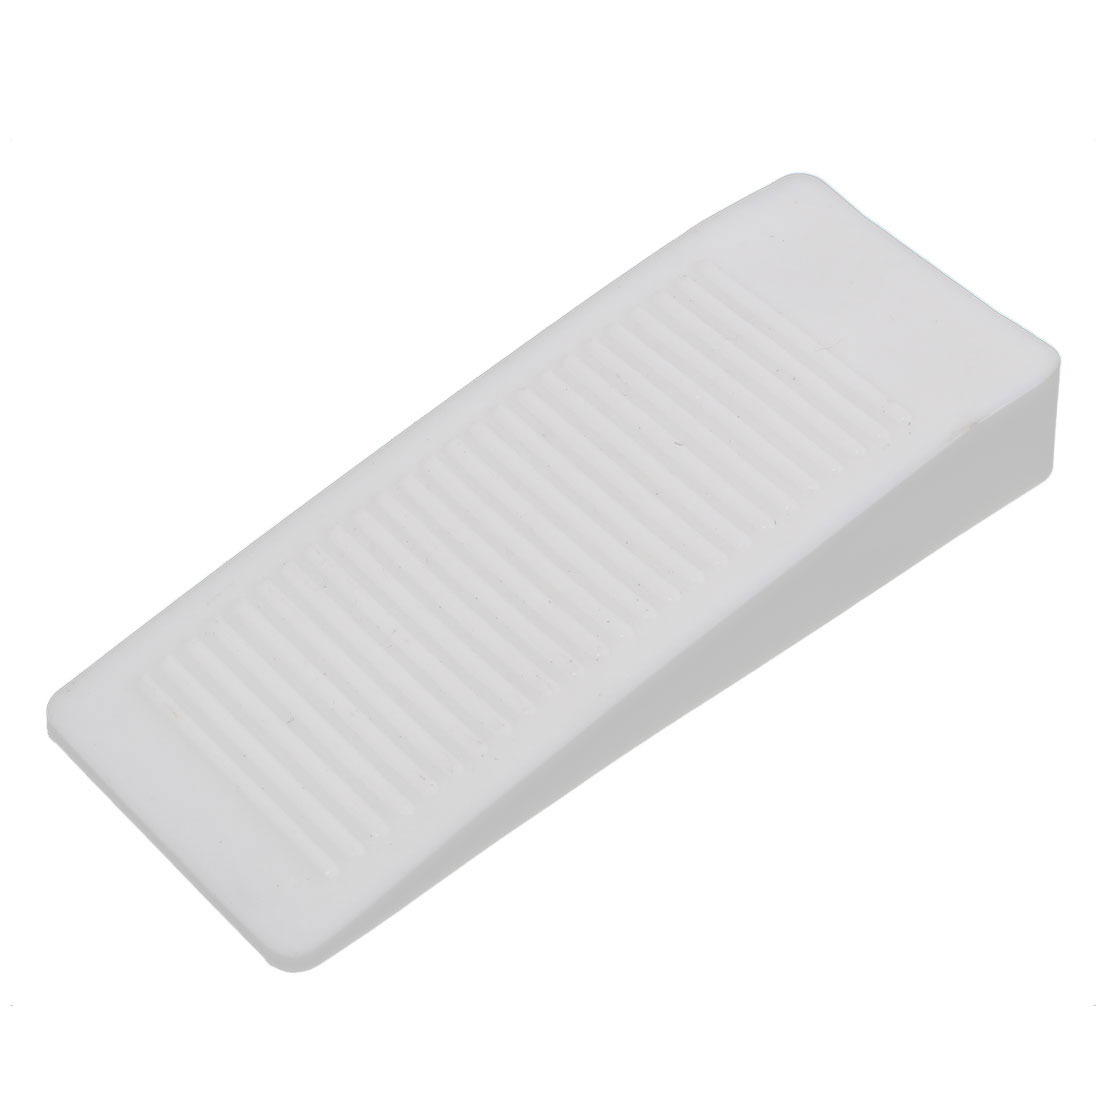 Home Office Safety Rubber Door Stop Stopper Doorstop Wedge Block White